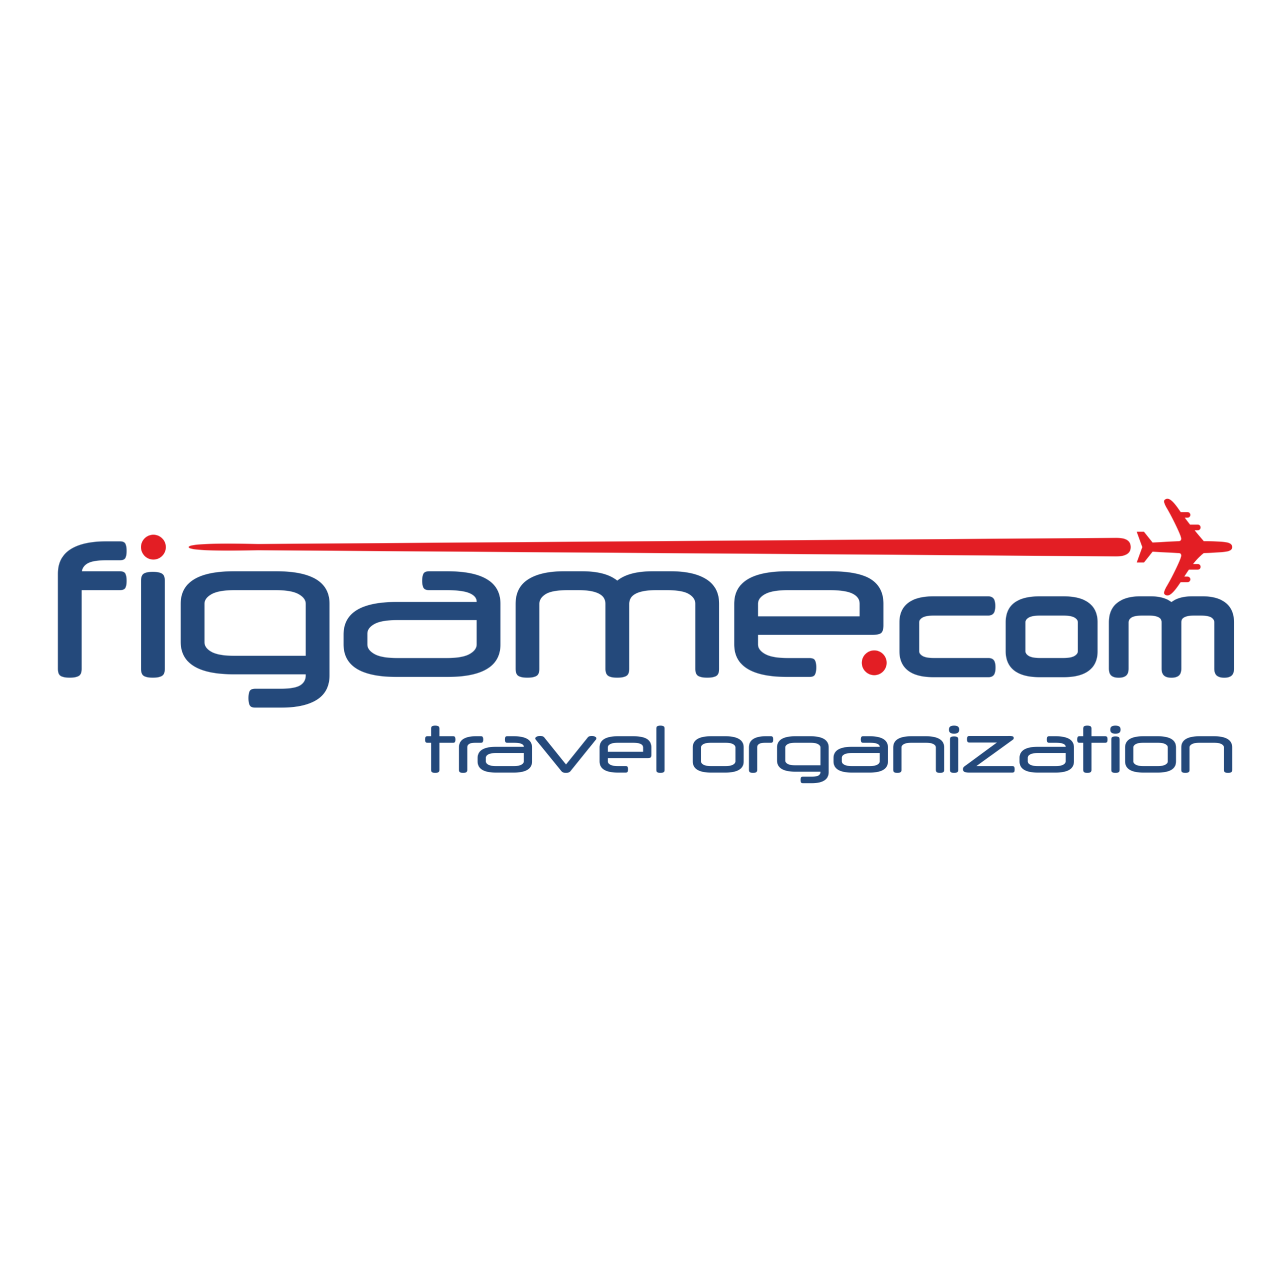 figame logo